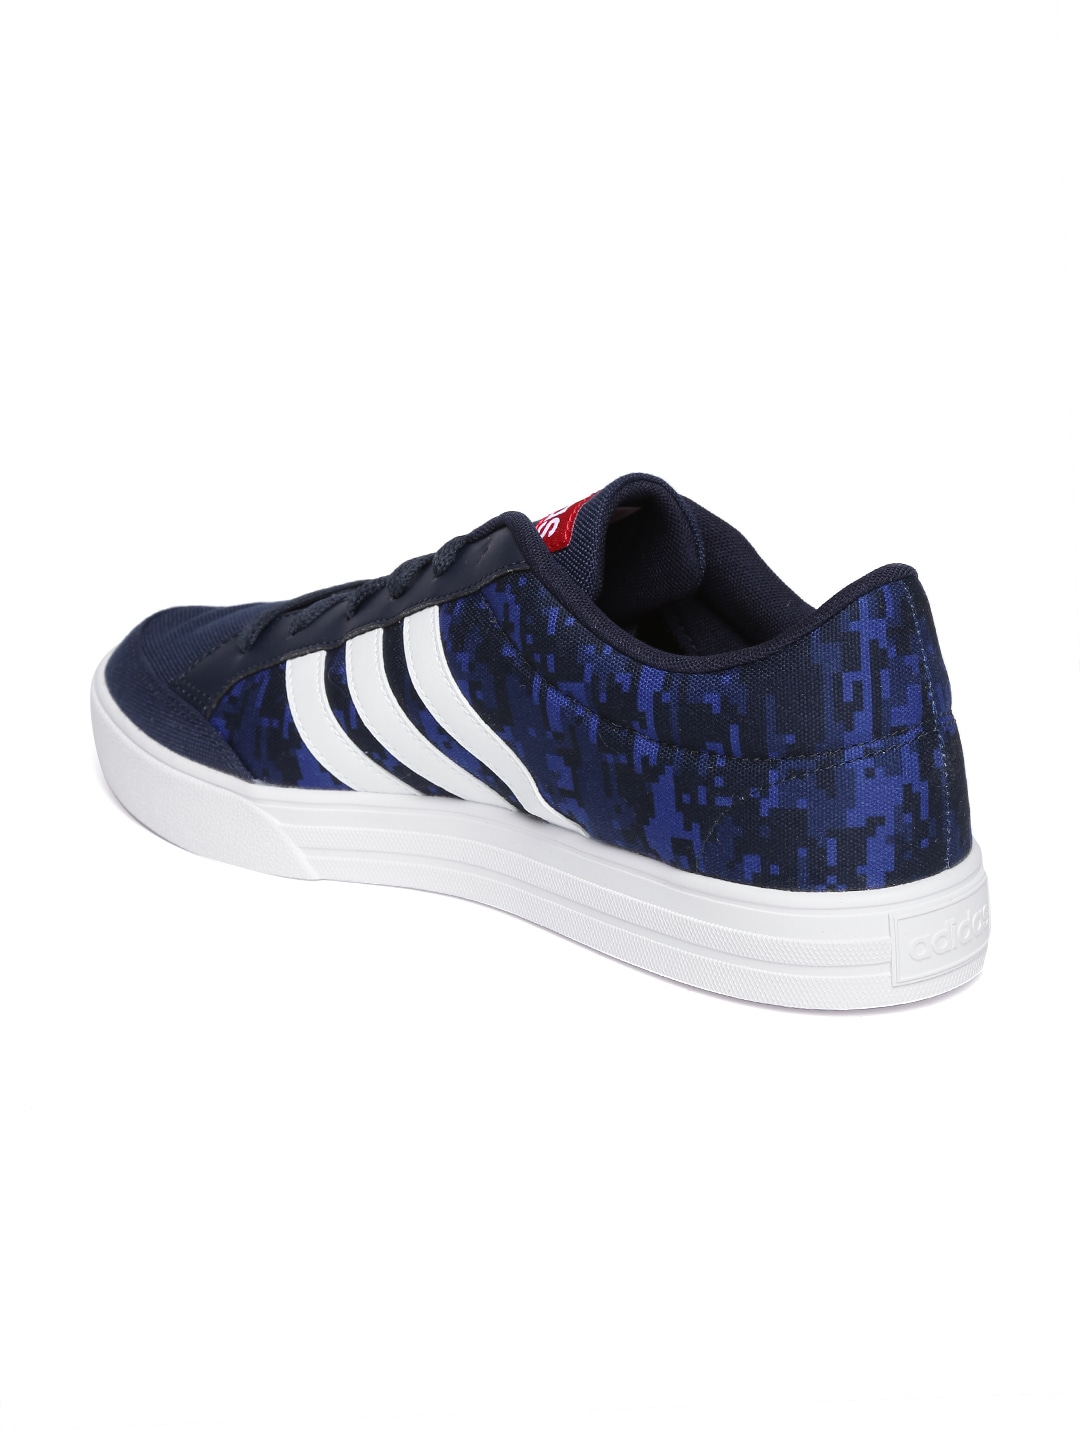 16caedcdde9 ... neo leather blue Adidas Shoes - Buy Adidas Shoes Online for Men Women -  Mynt . ...